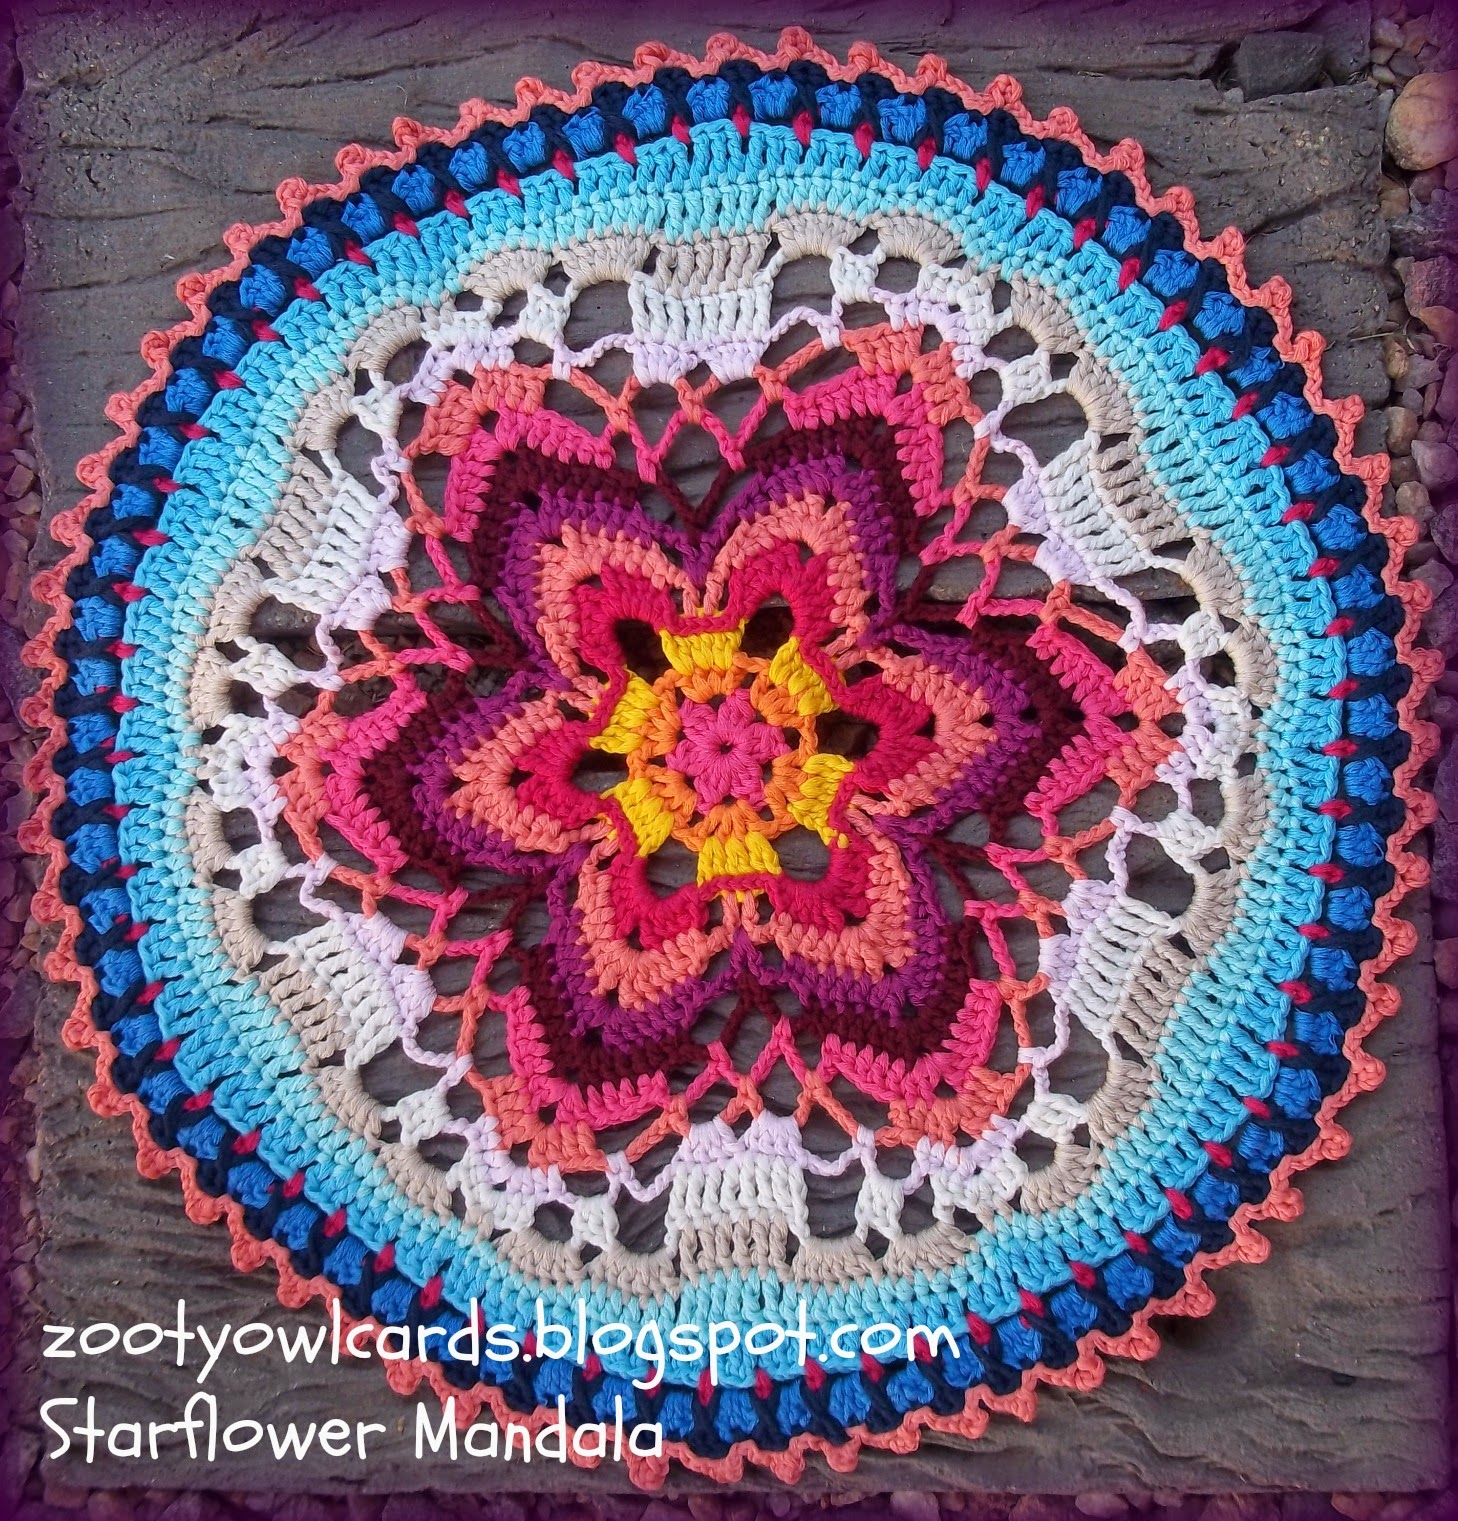 Crochet Free Pattern Mandala : Zooty Owls Crafty Blog: Starflower Mandala: Row by Row